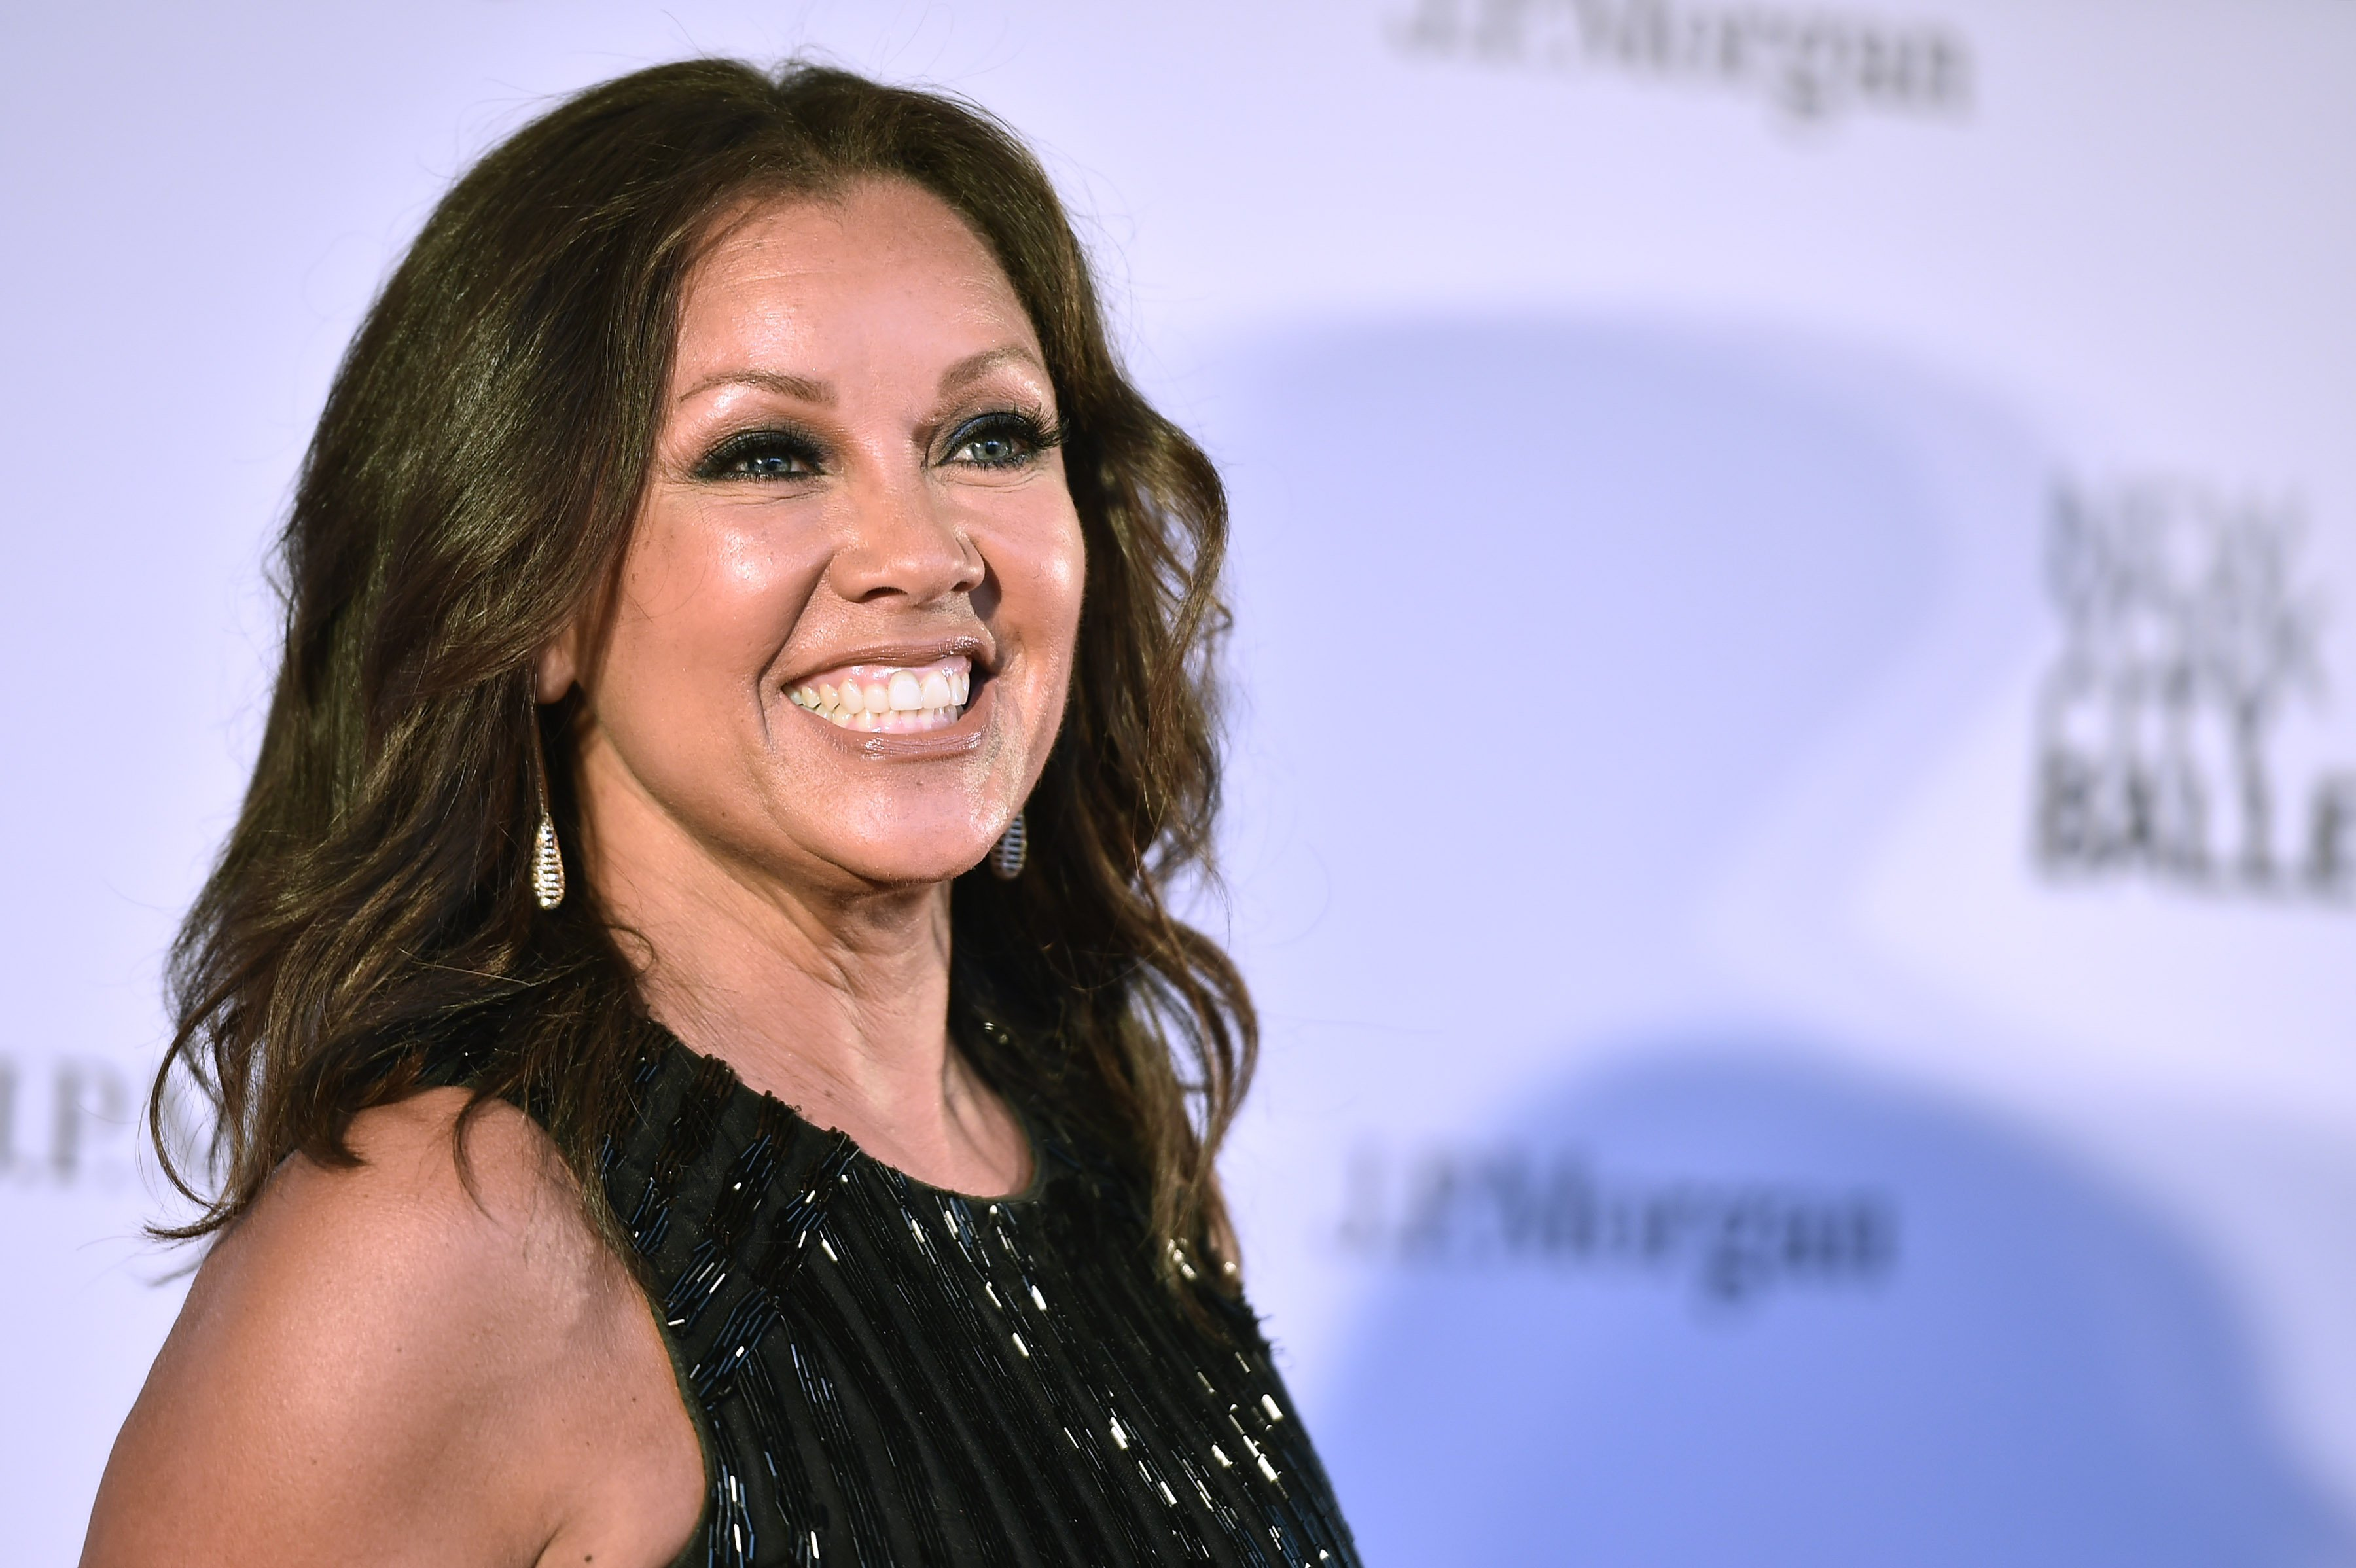 Vanessa Williams attends New York City Ballet 2018 Spring Gala at Lincoln Center on May 3, 2018  | Photo: GettyImages